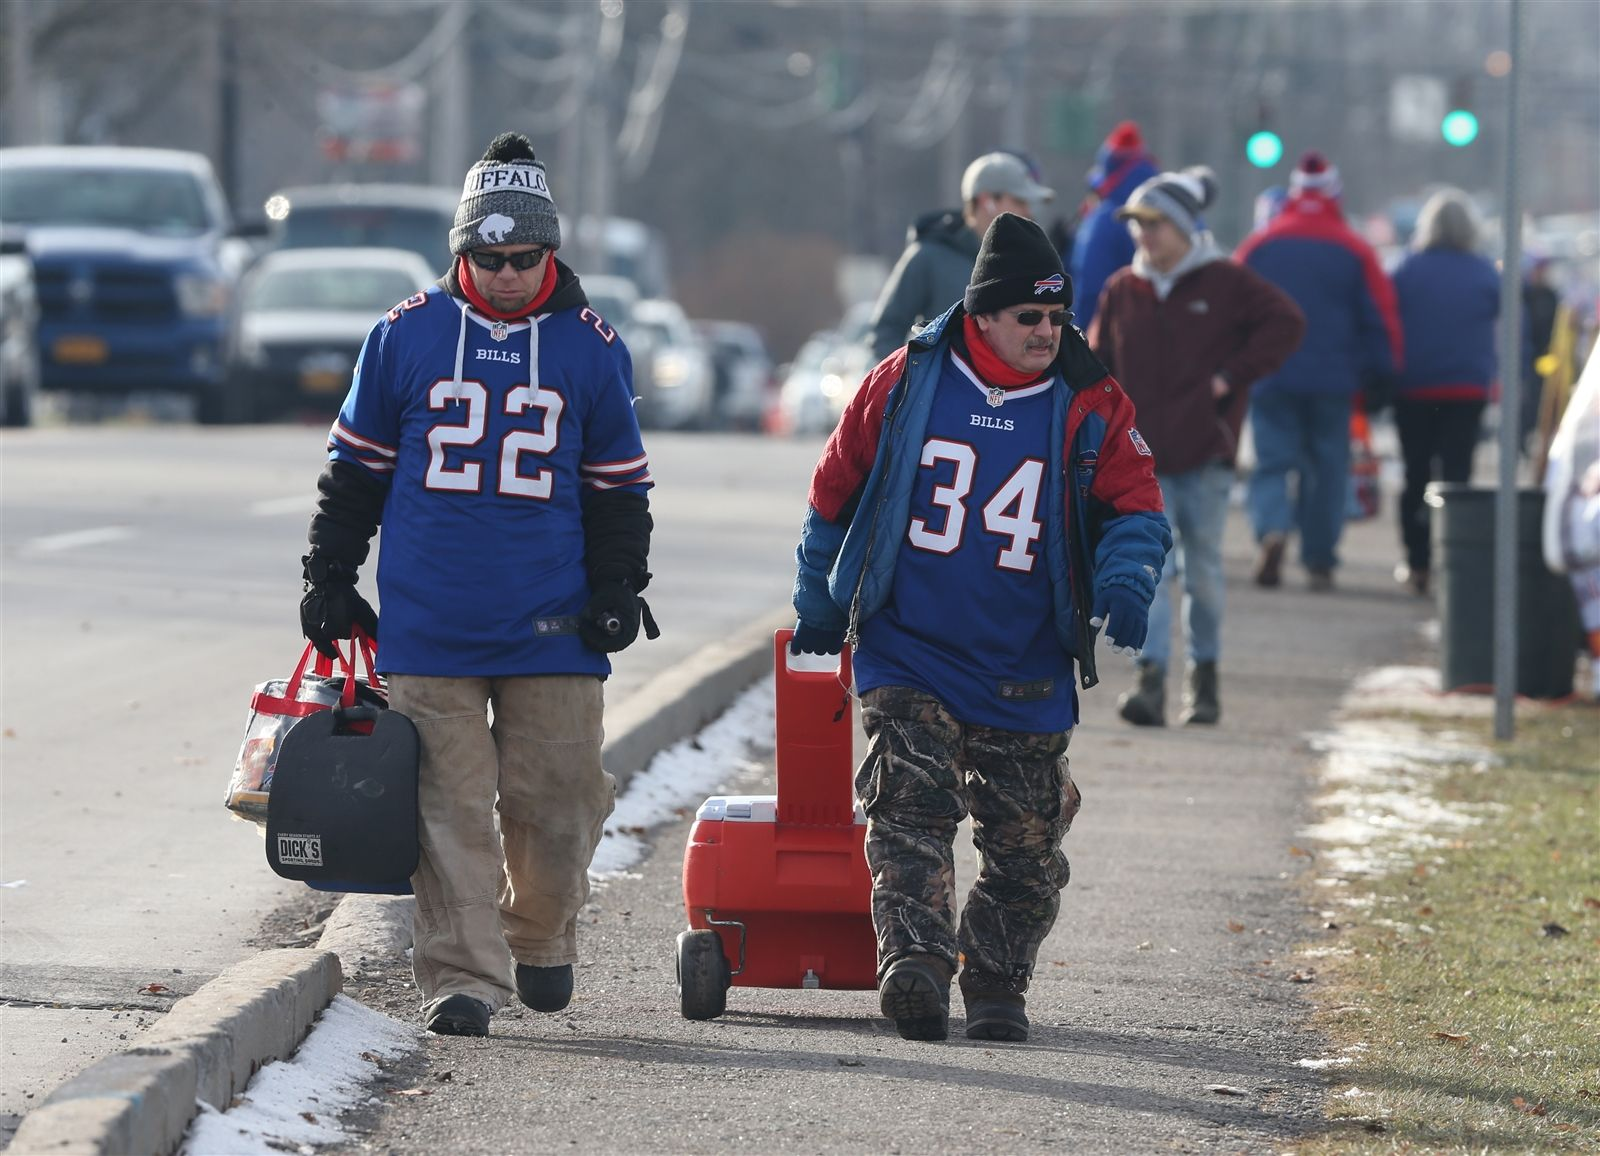 Buffalo Bills fans before the game against the Baltimore Ravens at New Era Field in Orchard Park, N.Y., on Sunday, Dec. 8, 2019.